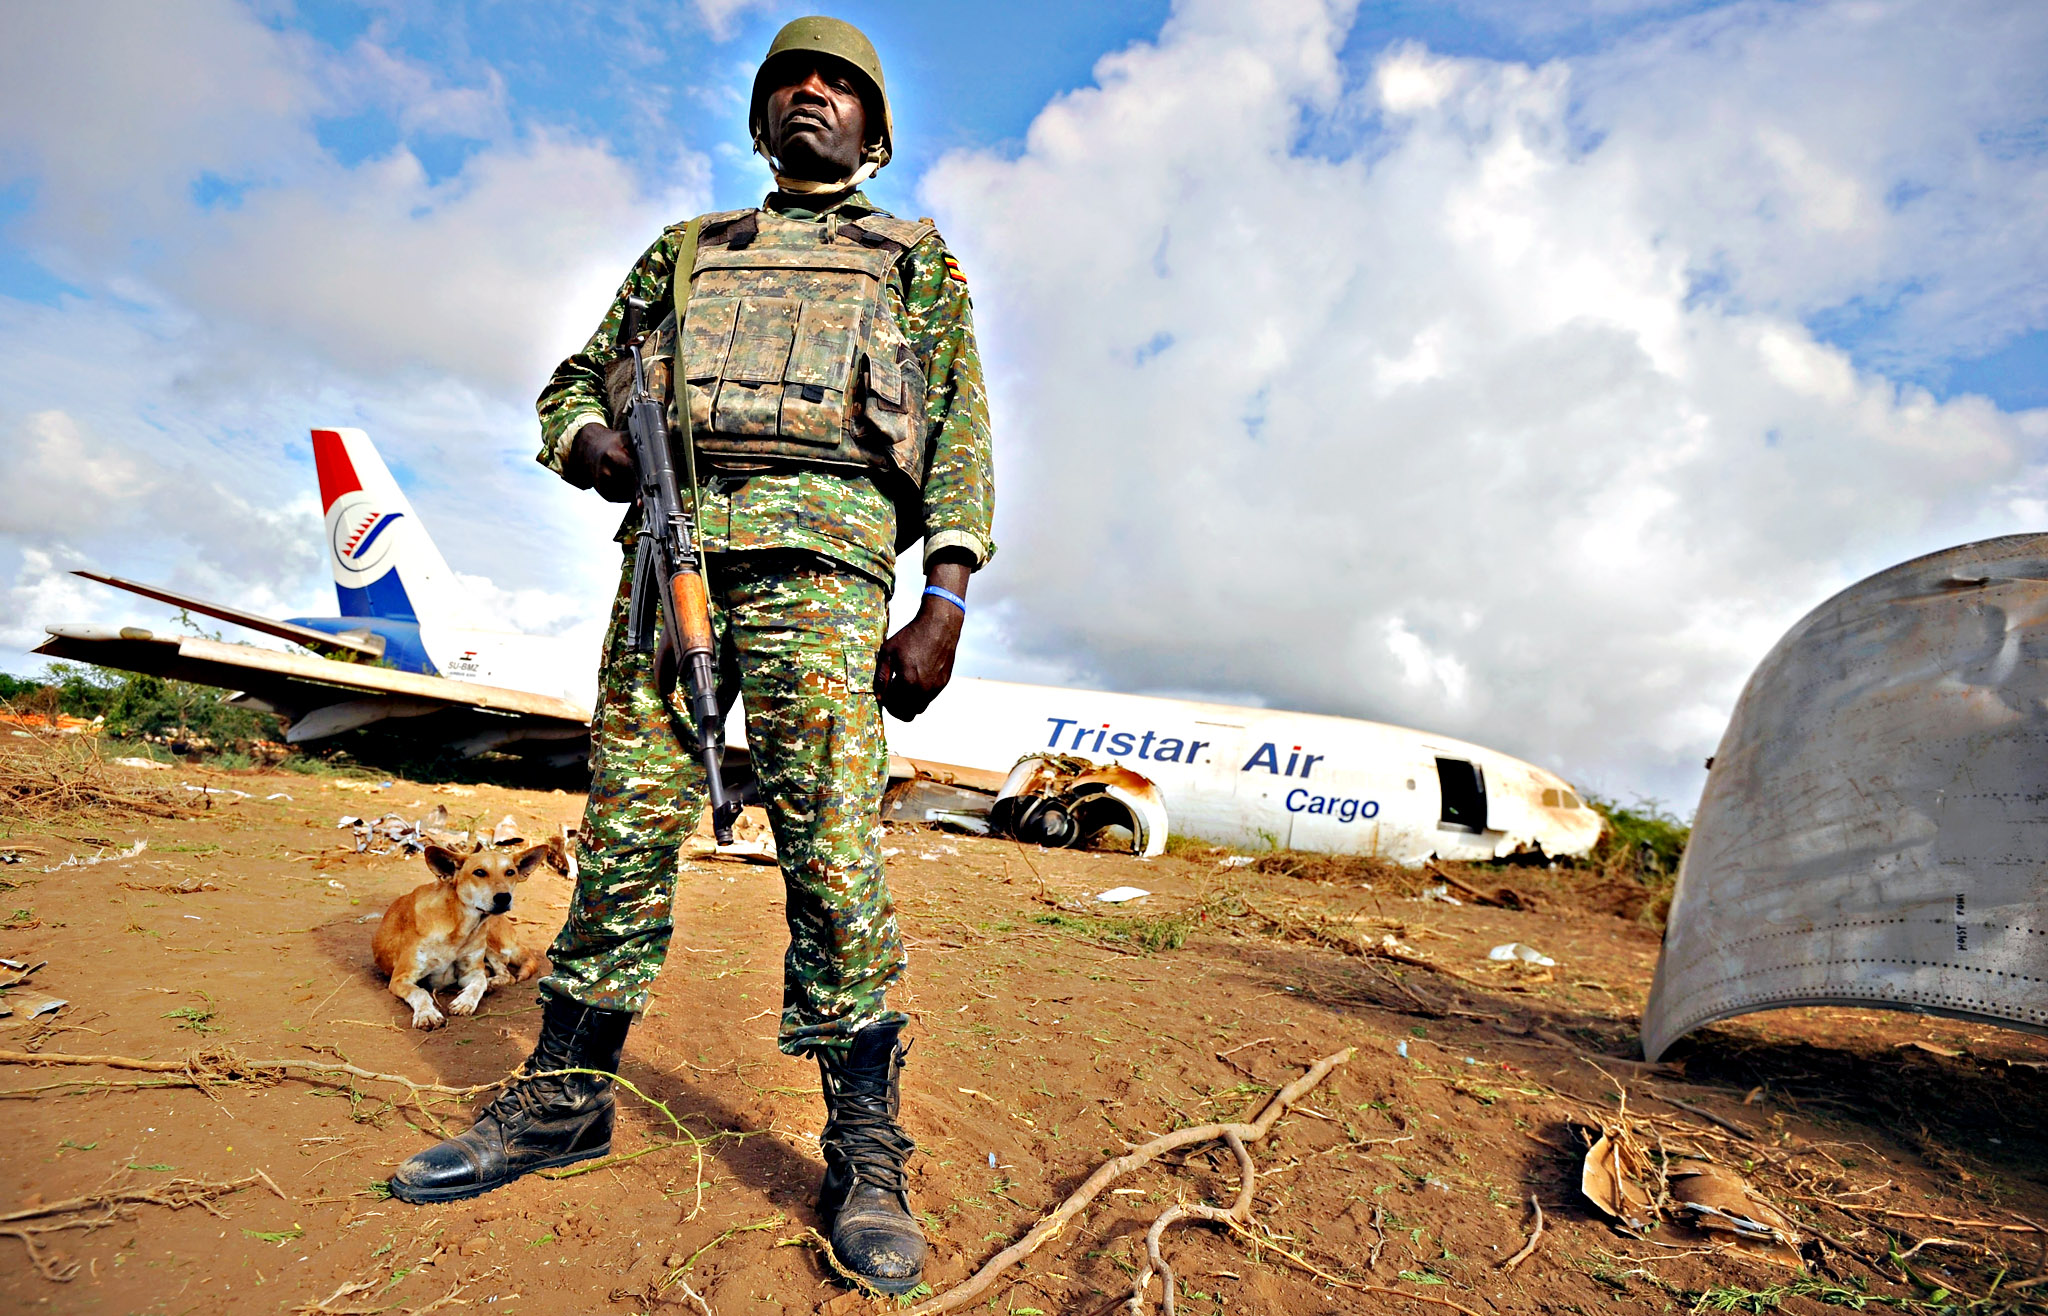 A soldier from the African Union (AU) peacekeeping force stands guard at the site where a cargo plane carrying supplies for AU troops crash-landed outside Somalia's capital, on Tuesday at Abirska, some 18 kilometres outside Somalian capital, Mogadishu. The officials said the Egyptian-owned transport plane went down after making several unsuccessful passes over the seafront airport. Two of the six crew members suffered light injuries in the crash, the officials said, but added that the plane and those on board were safe having landed in an area controlled by the Somali government and the African Union's AMISOM force